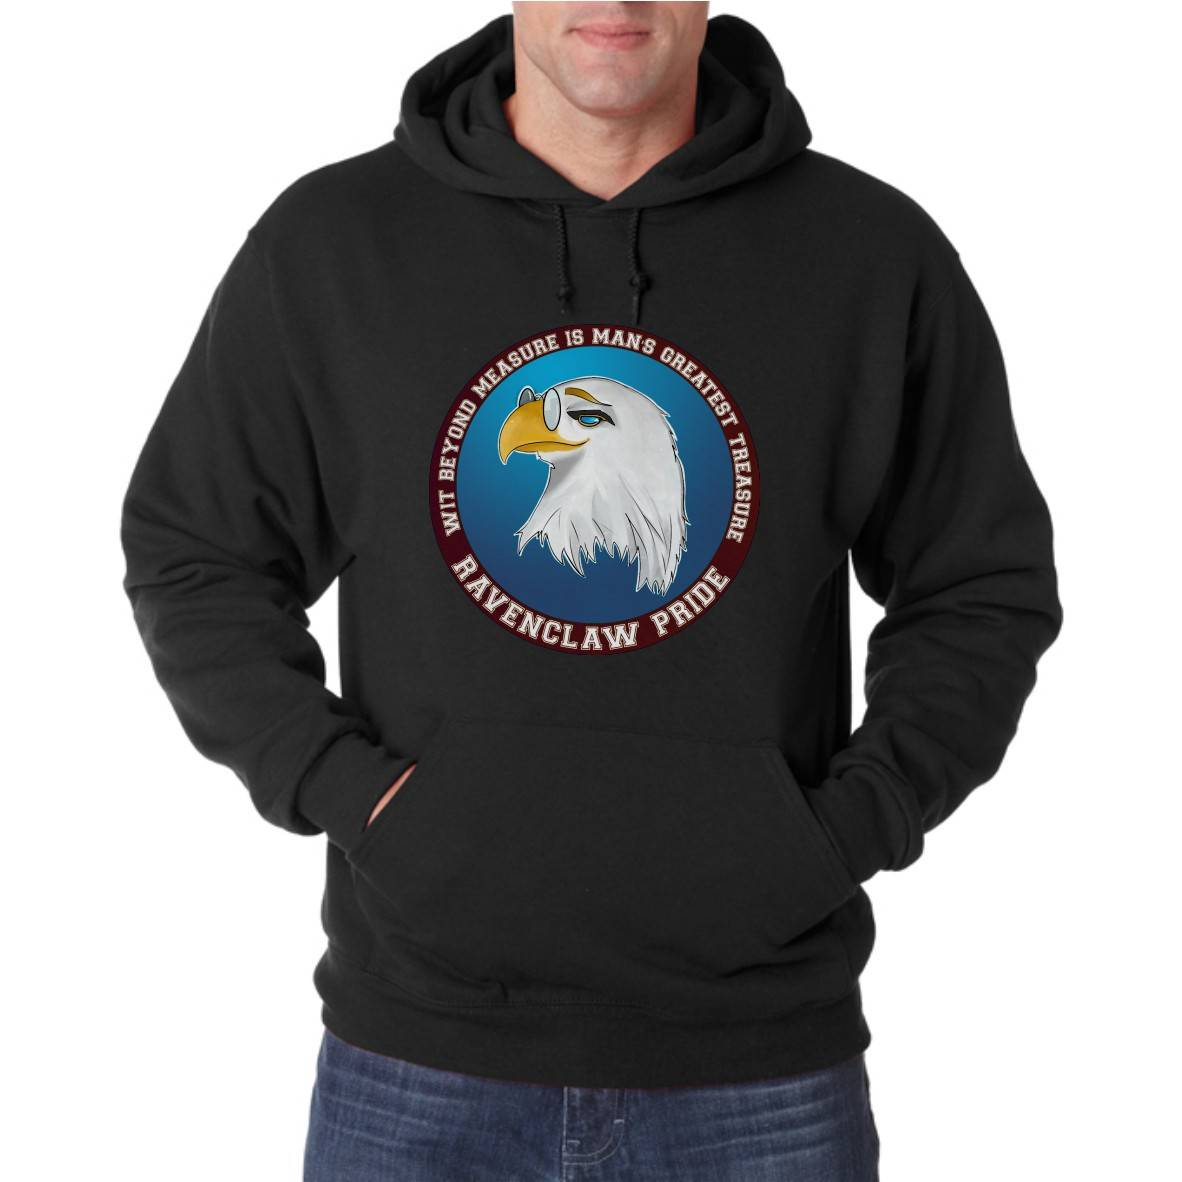 RAVENCLAW PRIDE UNISEX HOODED